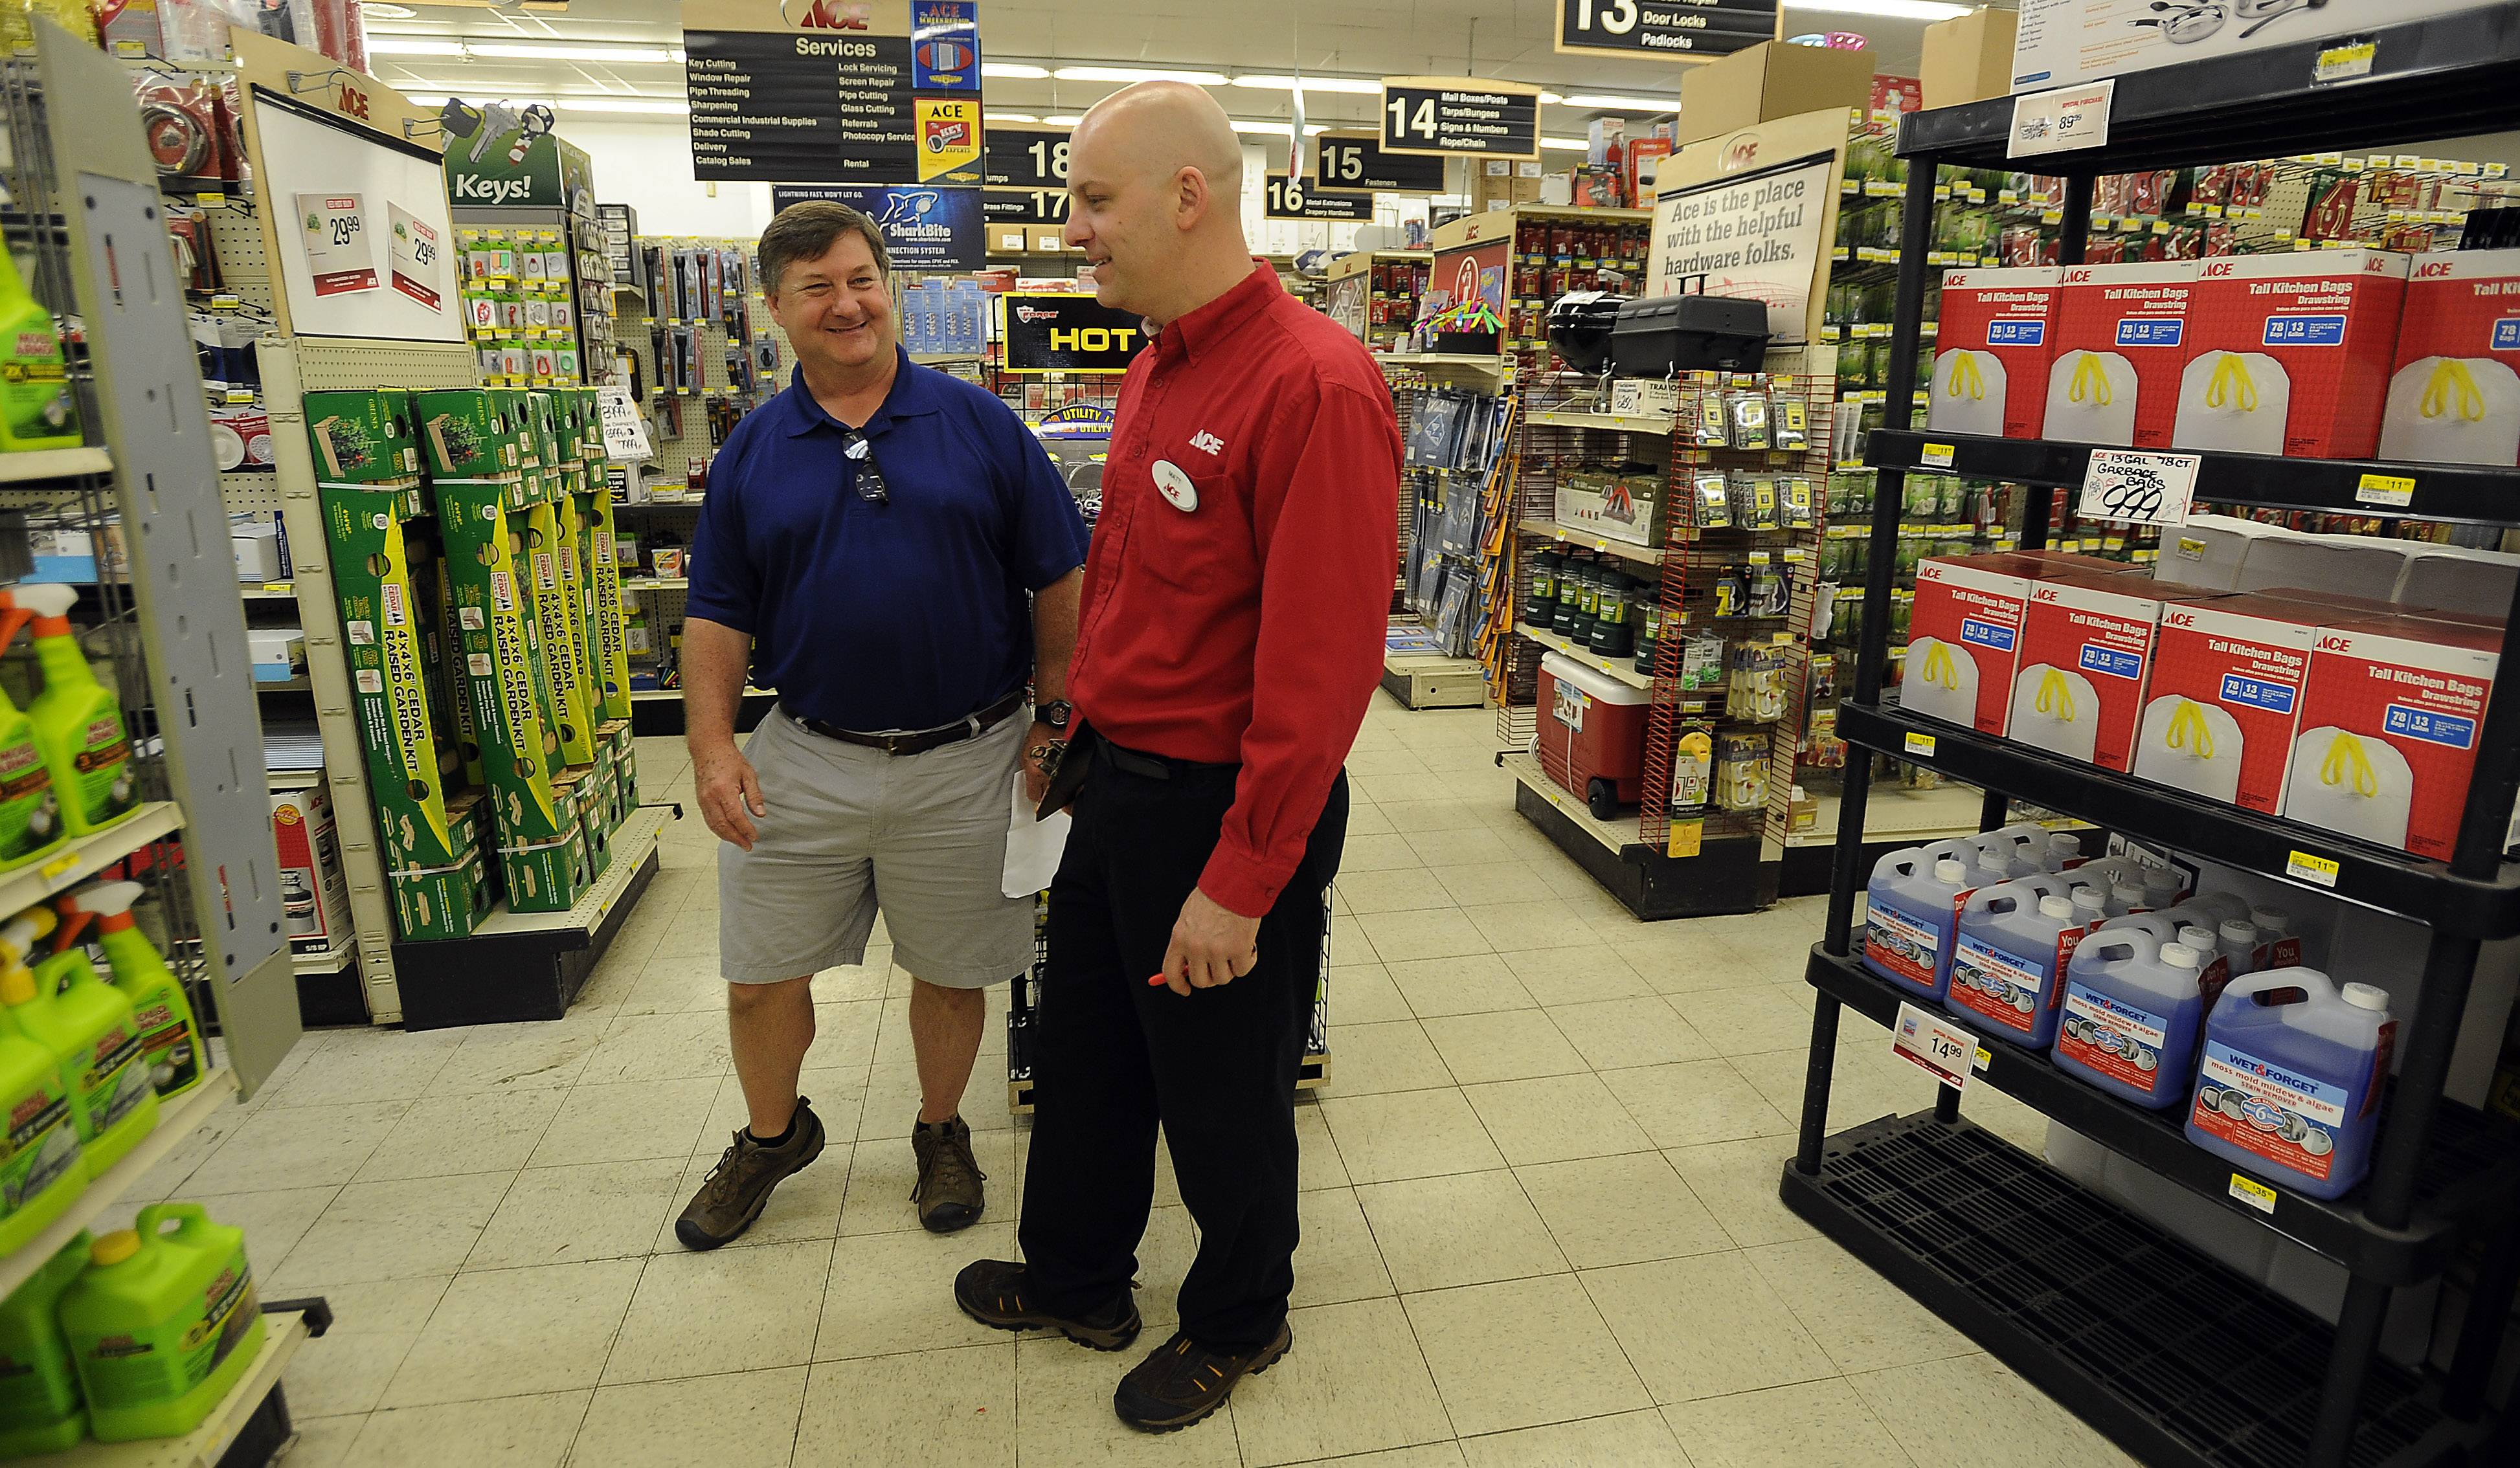 Sherwin Ace Hardware owner Matt Hanson, right, talks with former owner Bob Ward. Hanson was Ward's first hire after he bought the store in 1988.